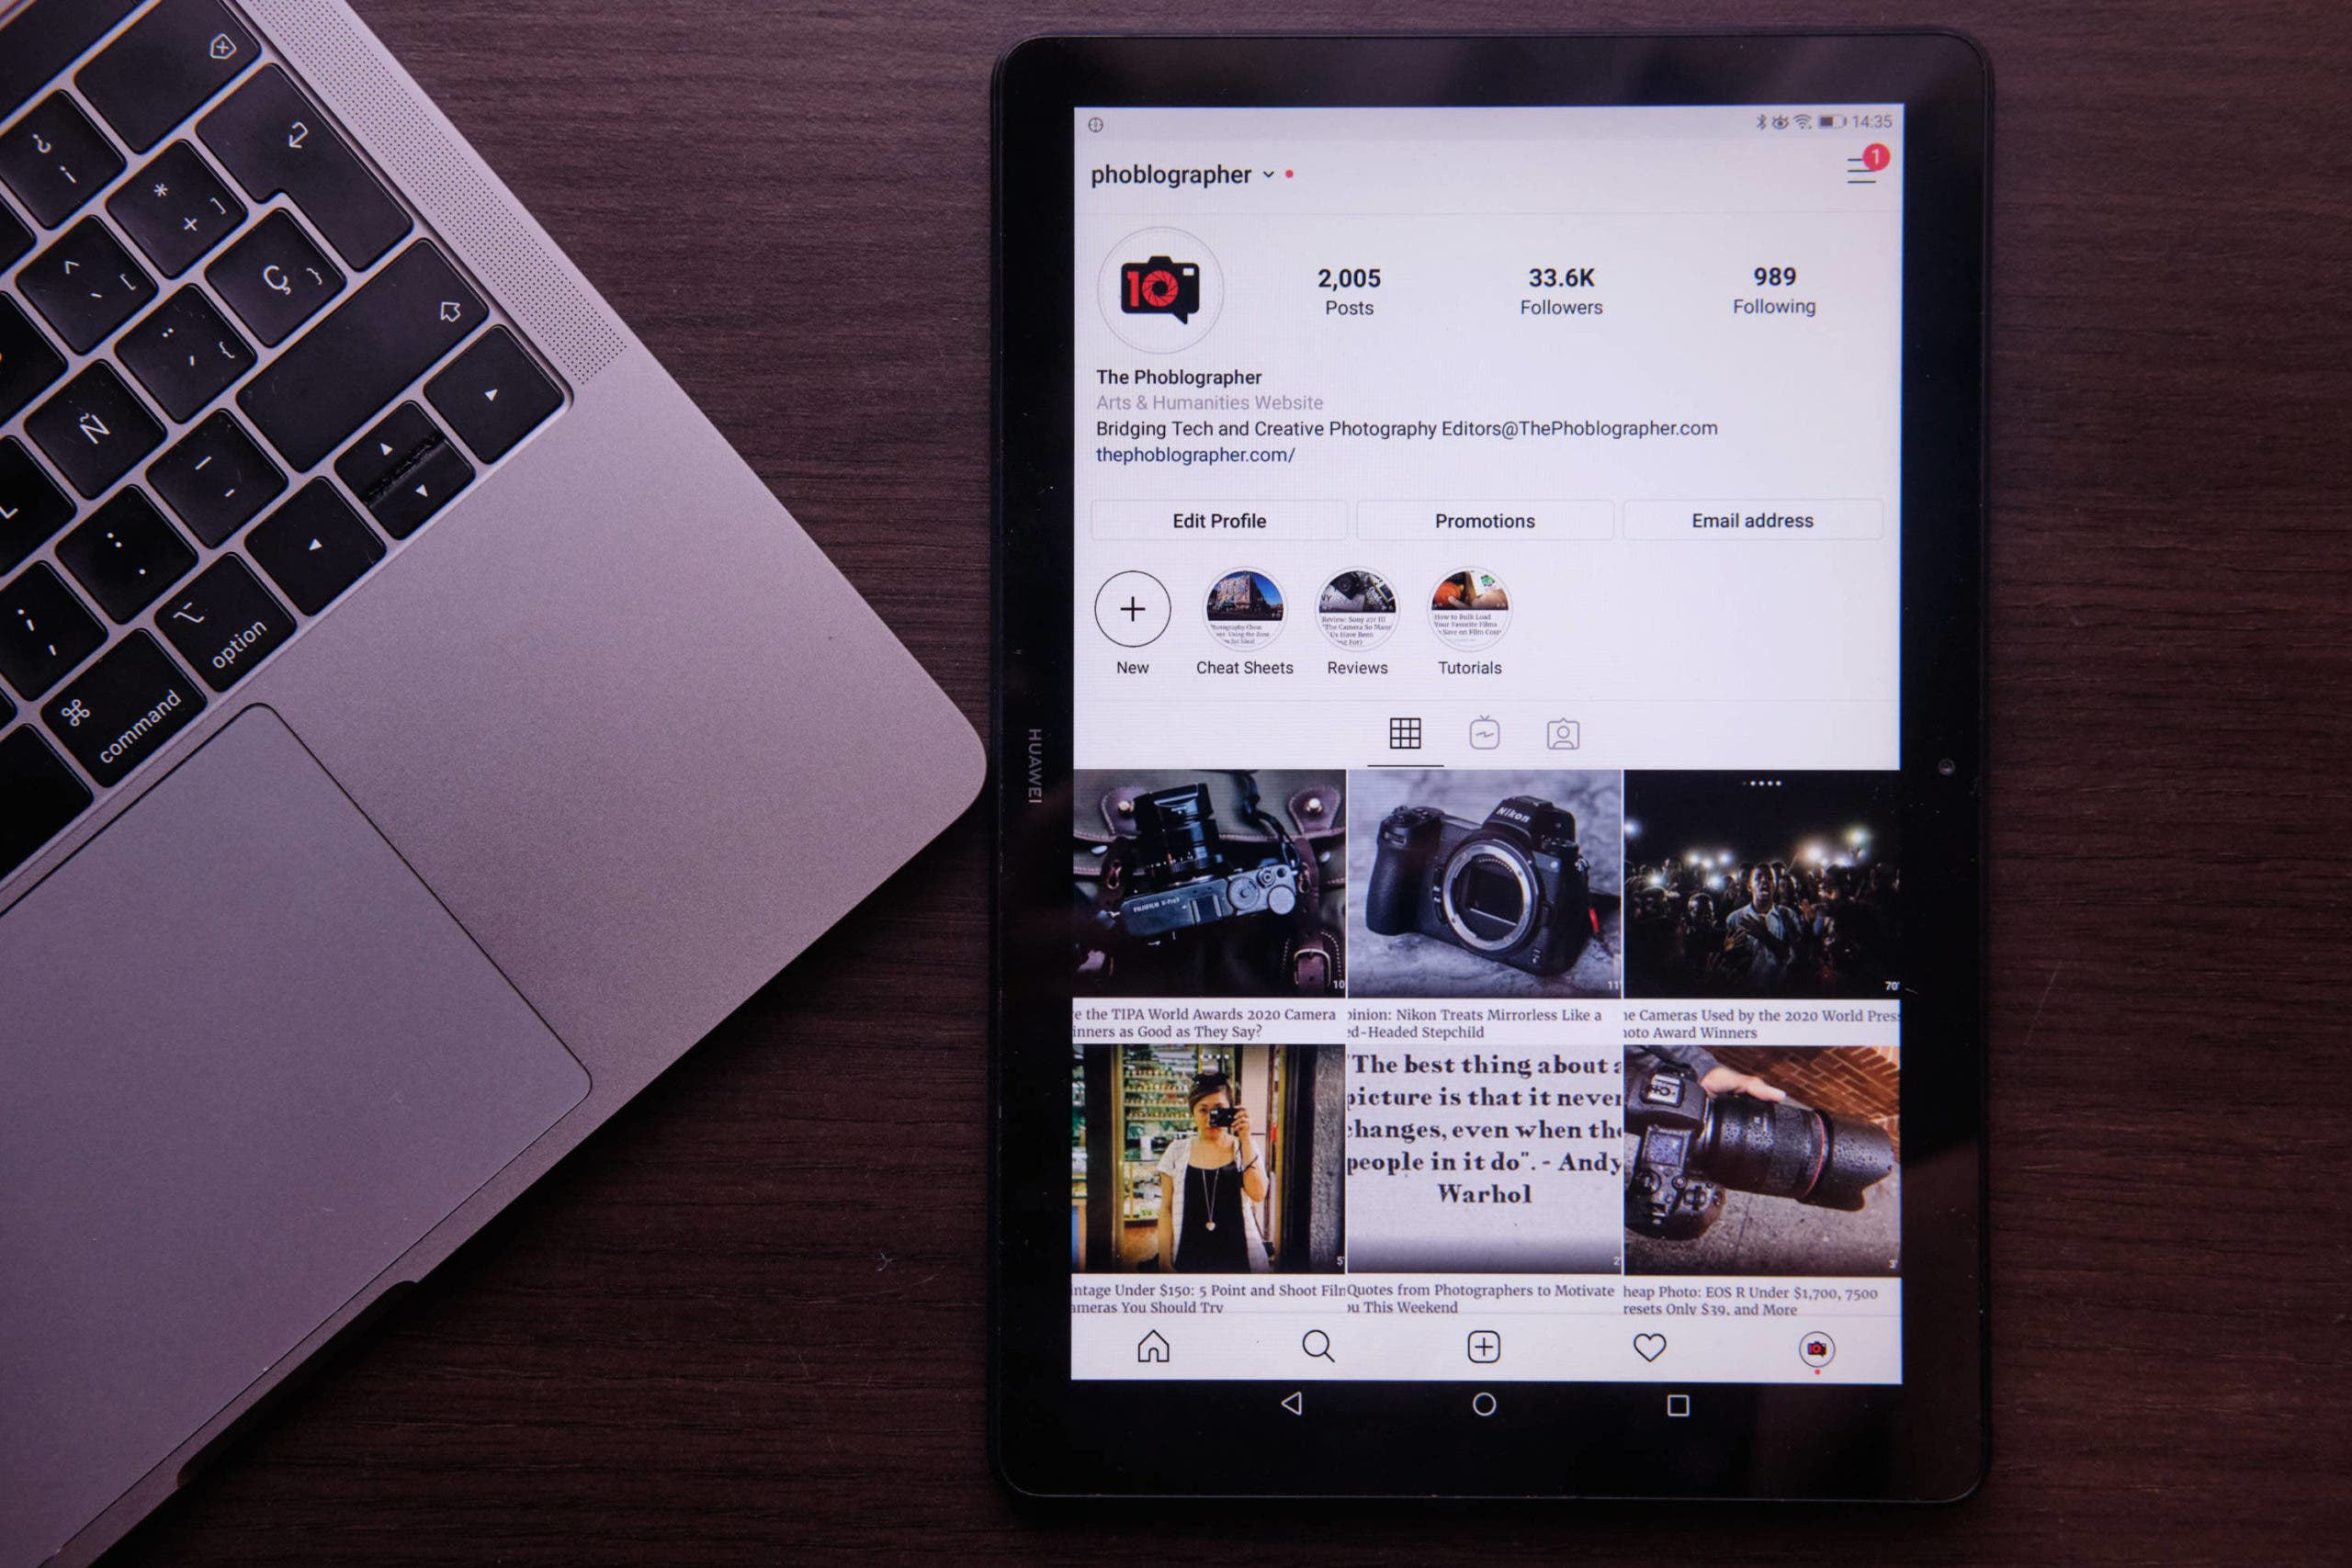 The Instagram Portfolio: The Essential Checklist for a Photographer